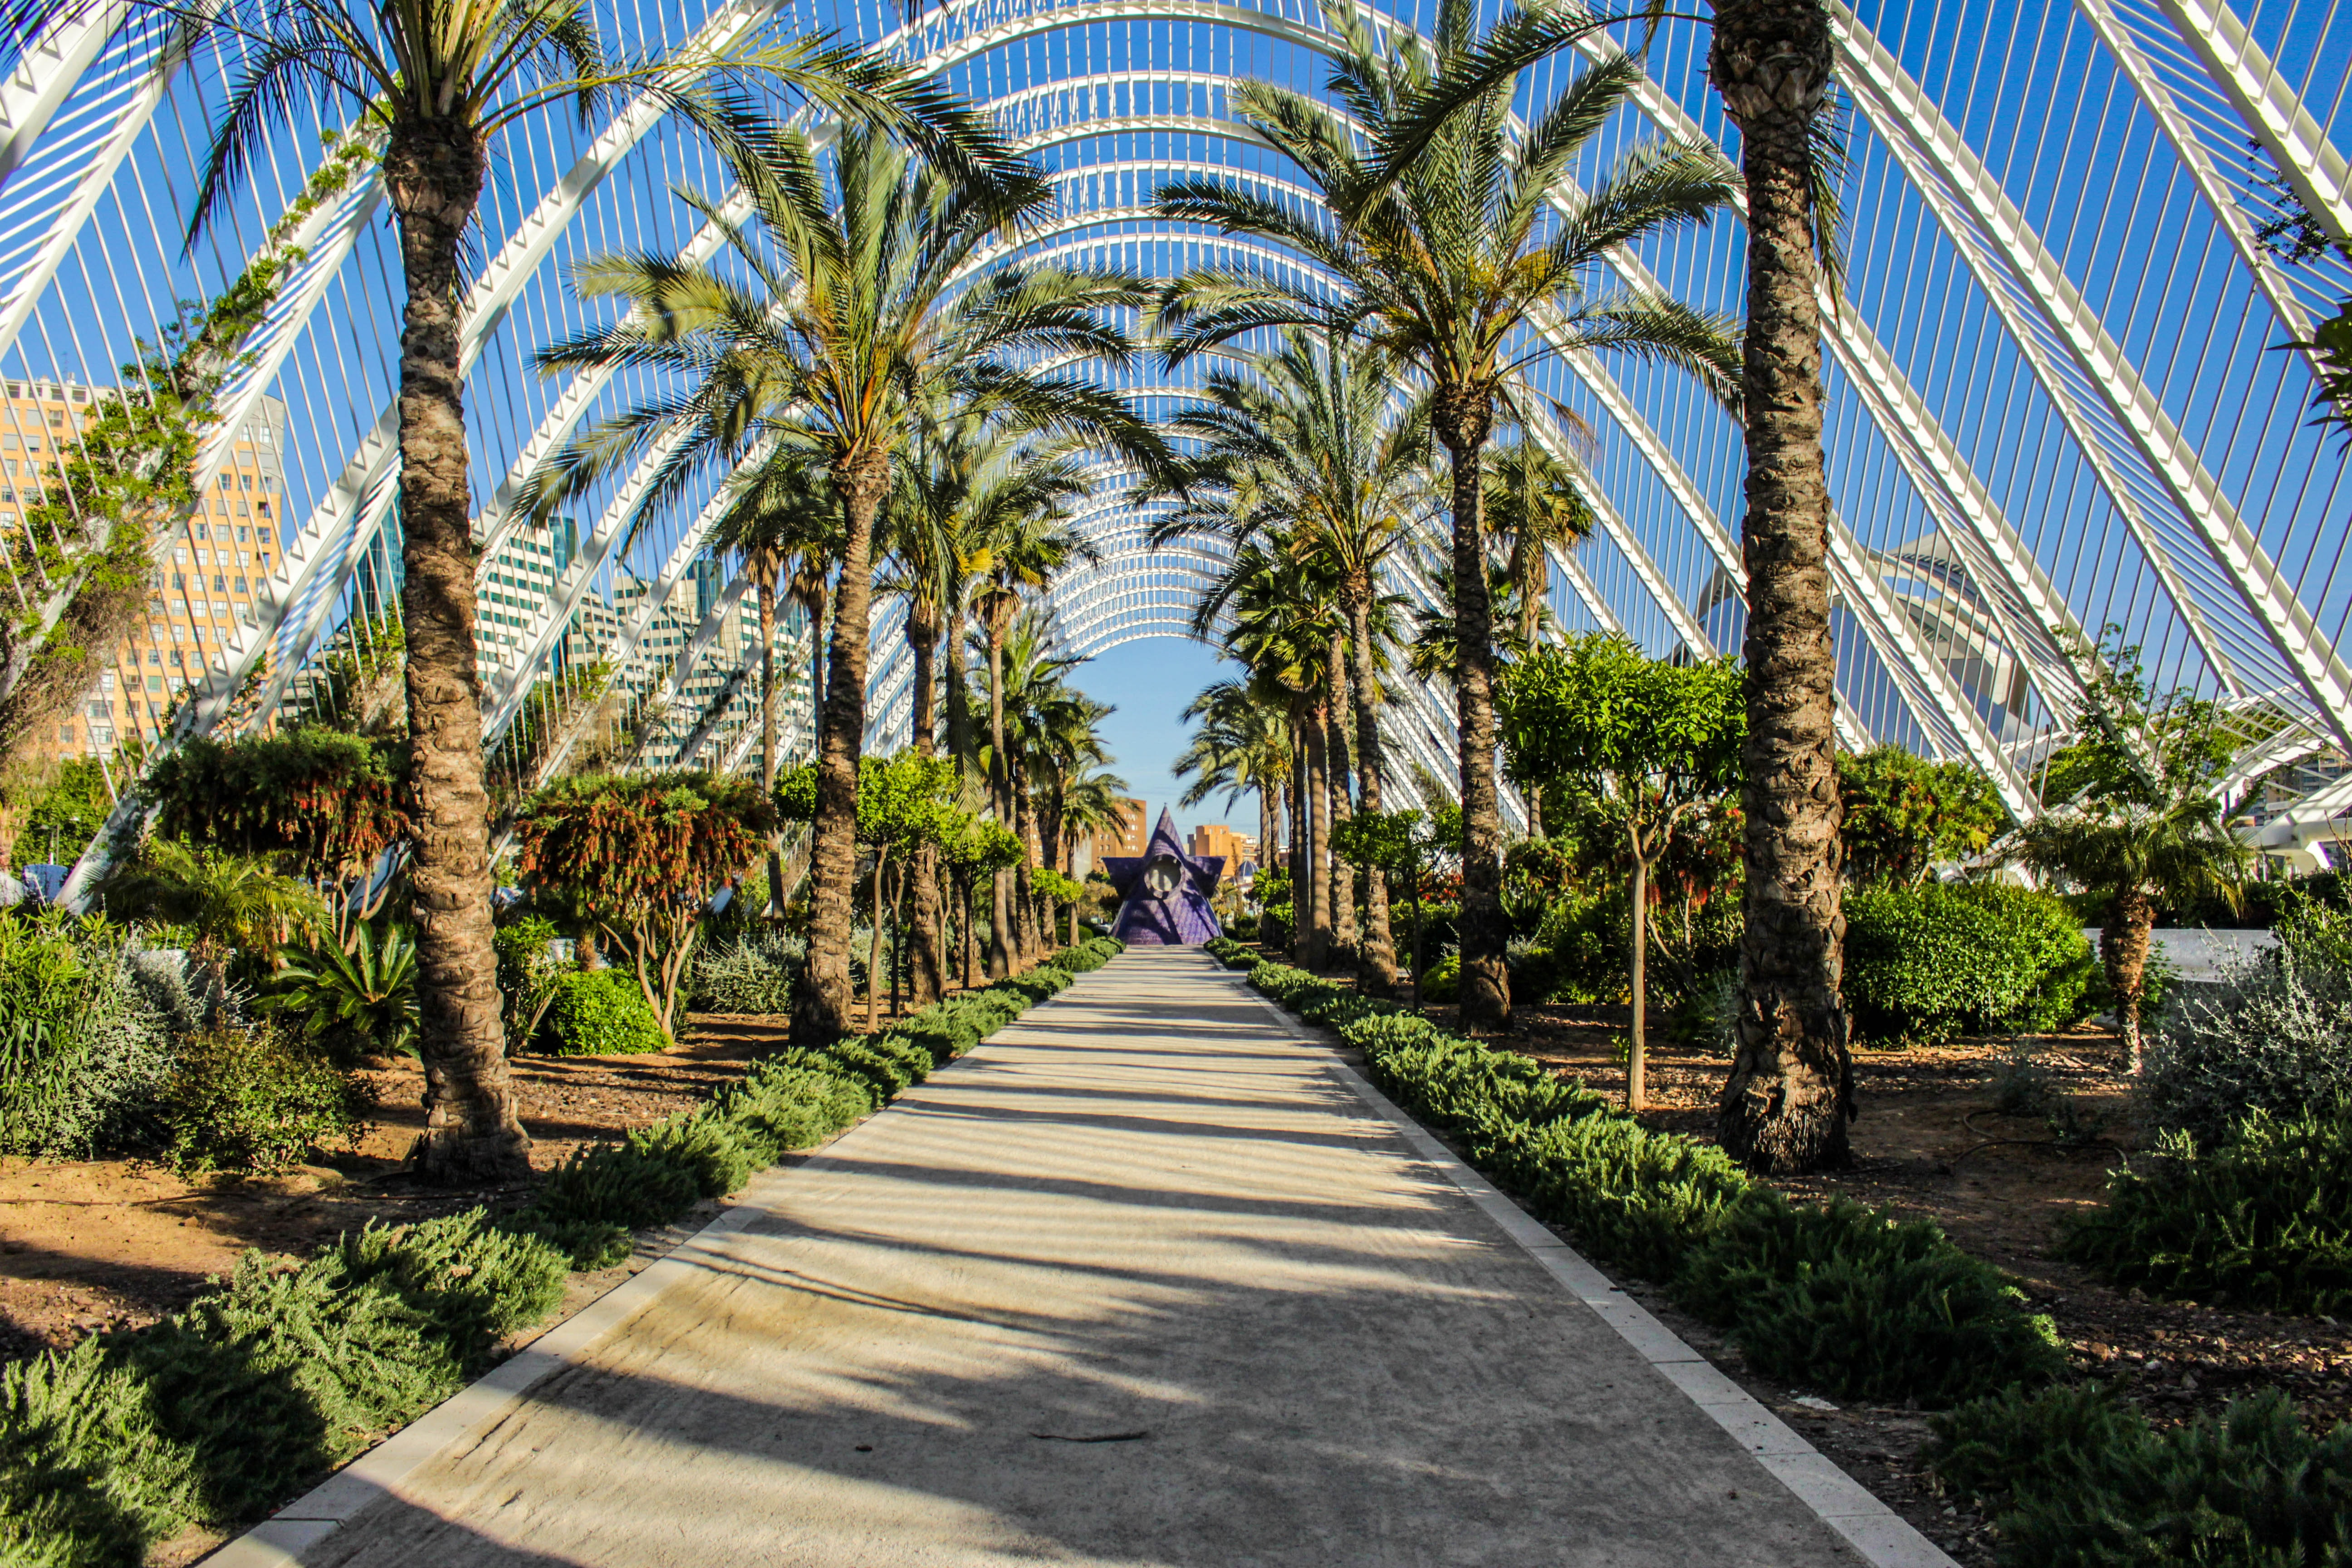 Take in some culture, Things to do for free in Valencia